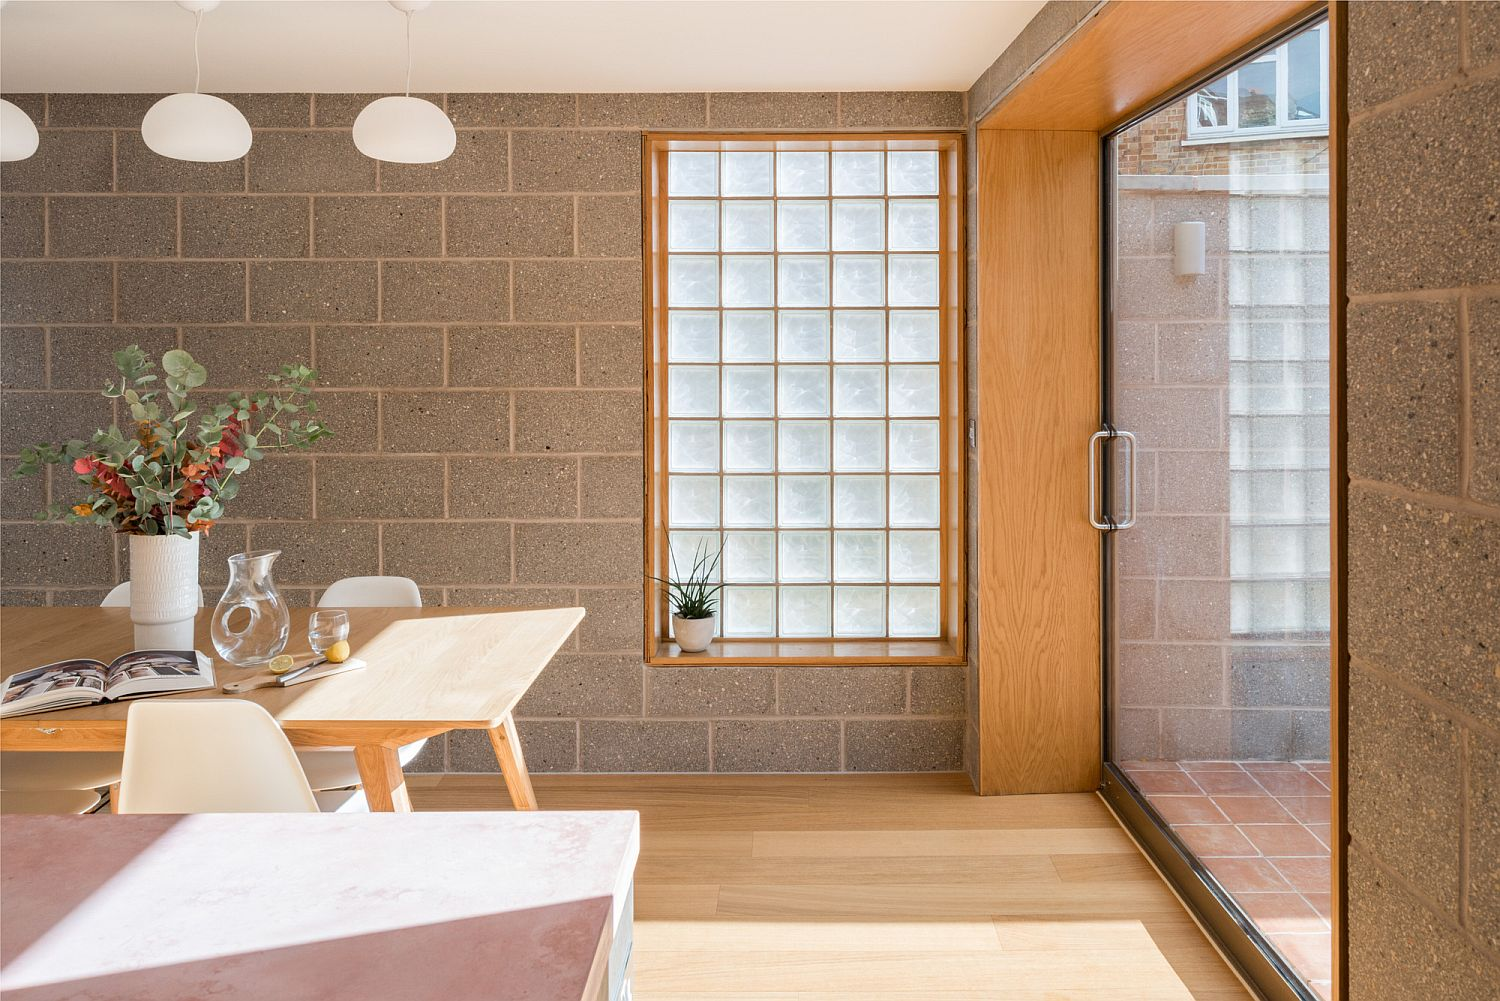 Gray cement blocks and sand blasted glass create a vivacious and bright interior